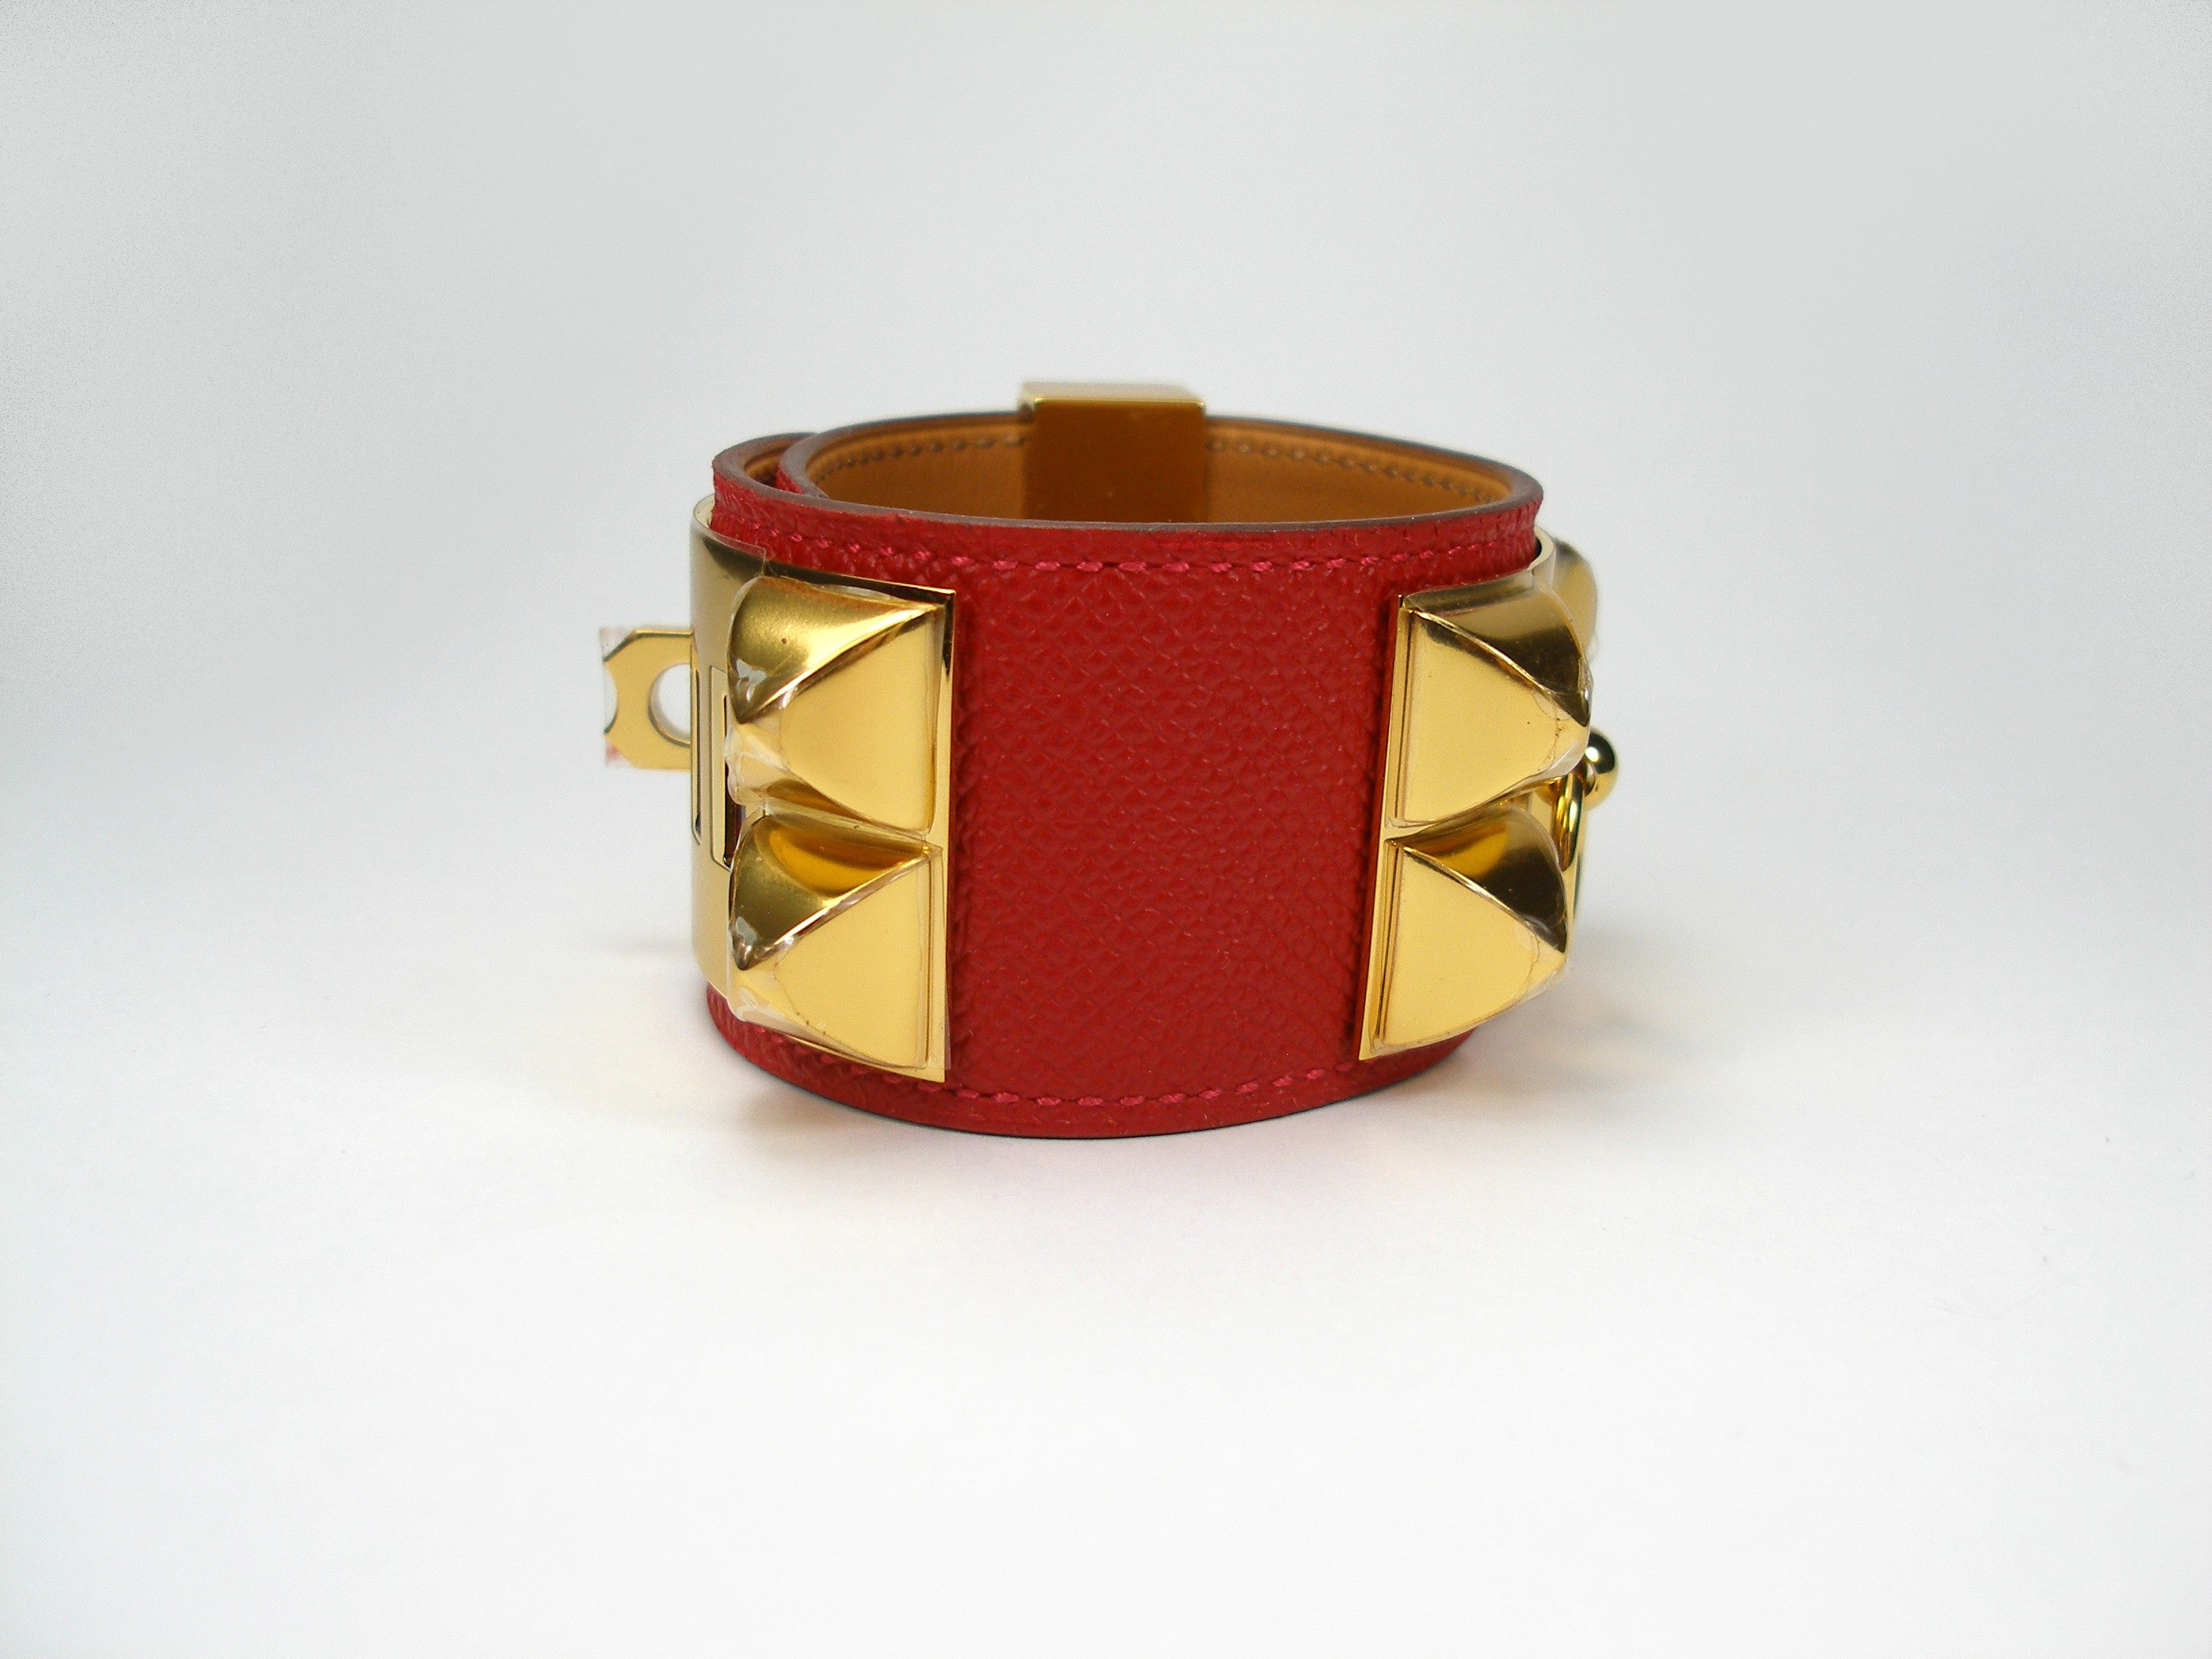 the bangle enlarged bracelets s de realreal jewelry products chien hermes bracelet collier herm